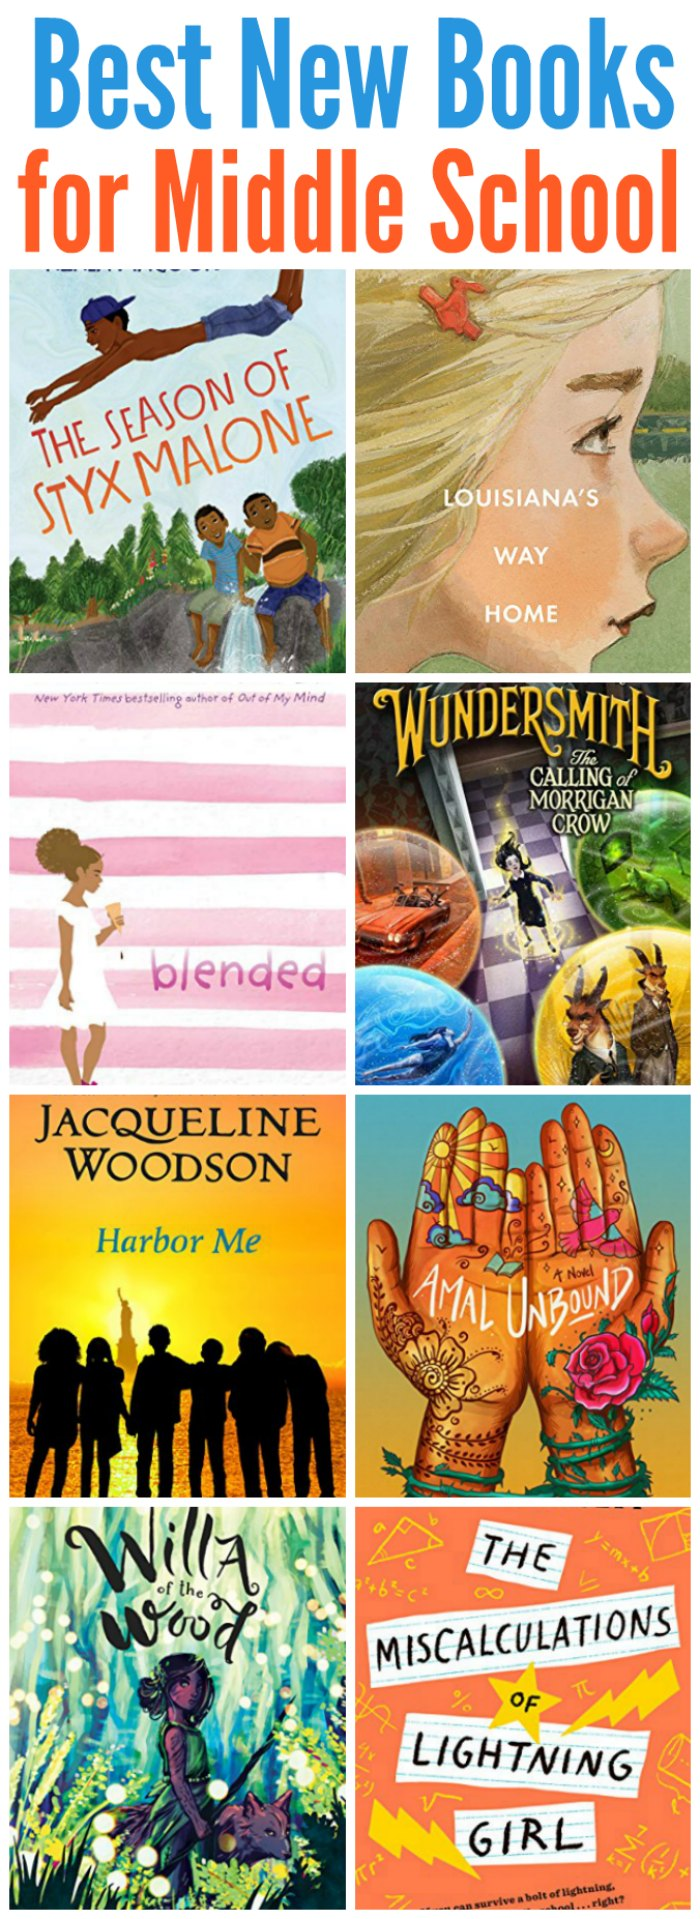 Trying to keep your kids hooked on reading? Or keep up? These best new middle school books of the year are going to hook your readers! | Mommy Evolution #reading #books #middleschool